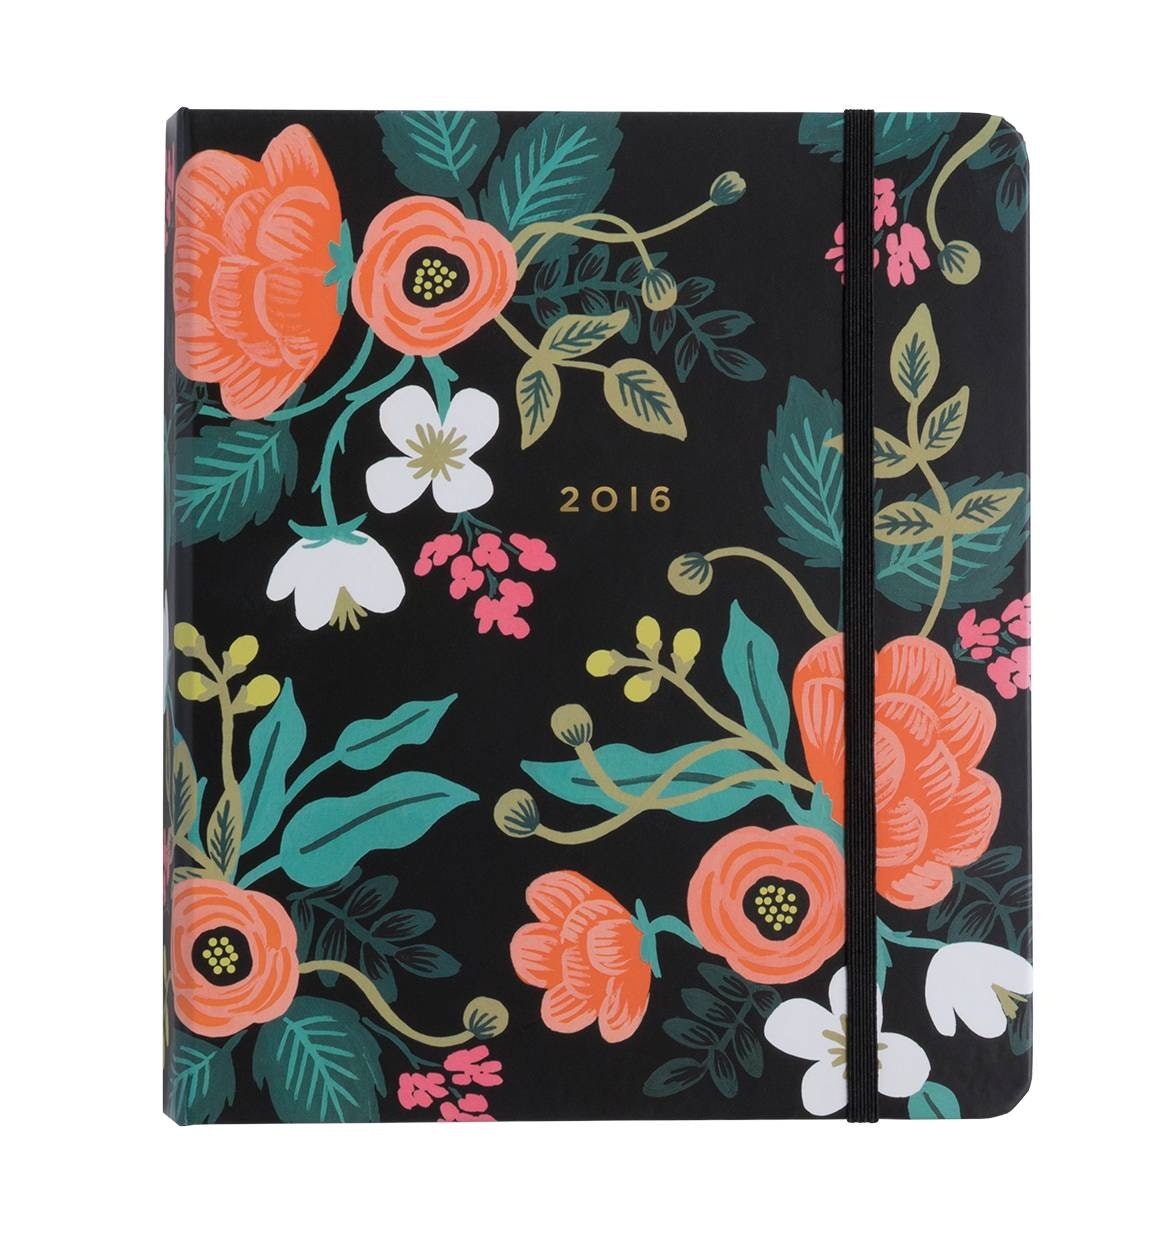 the best 2016 planners to help make this your most organized year yet